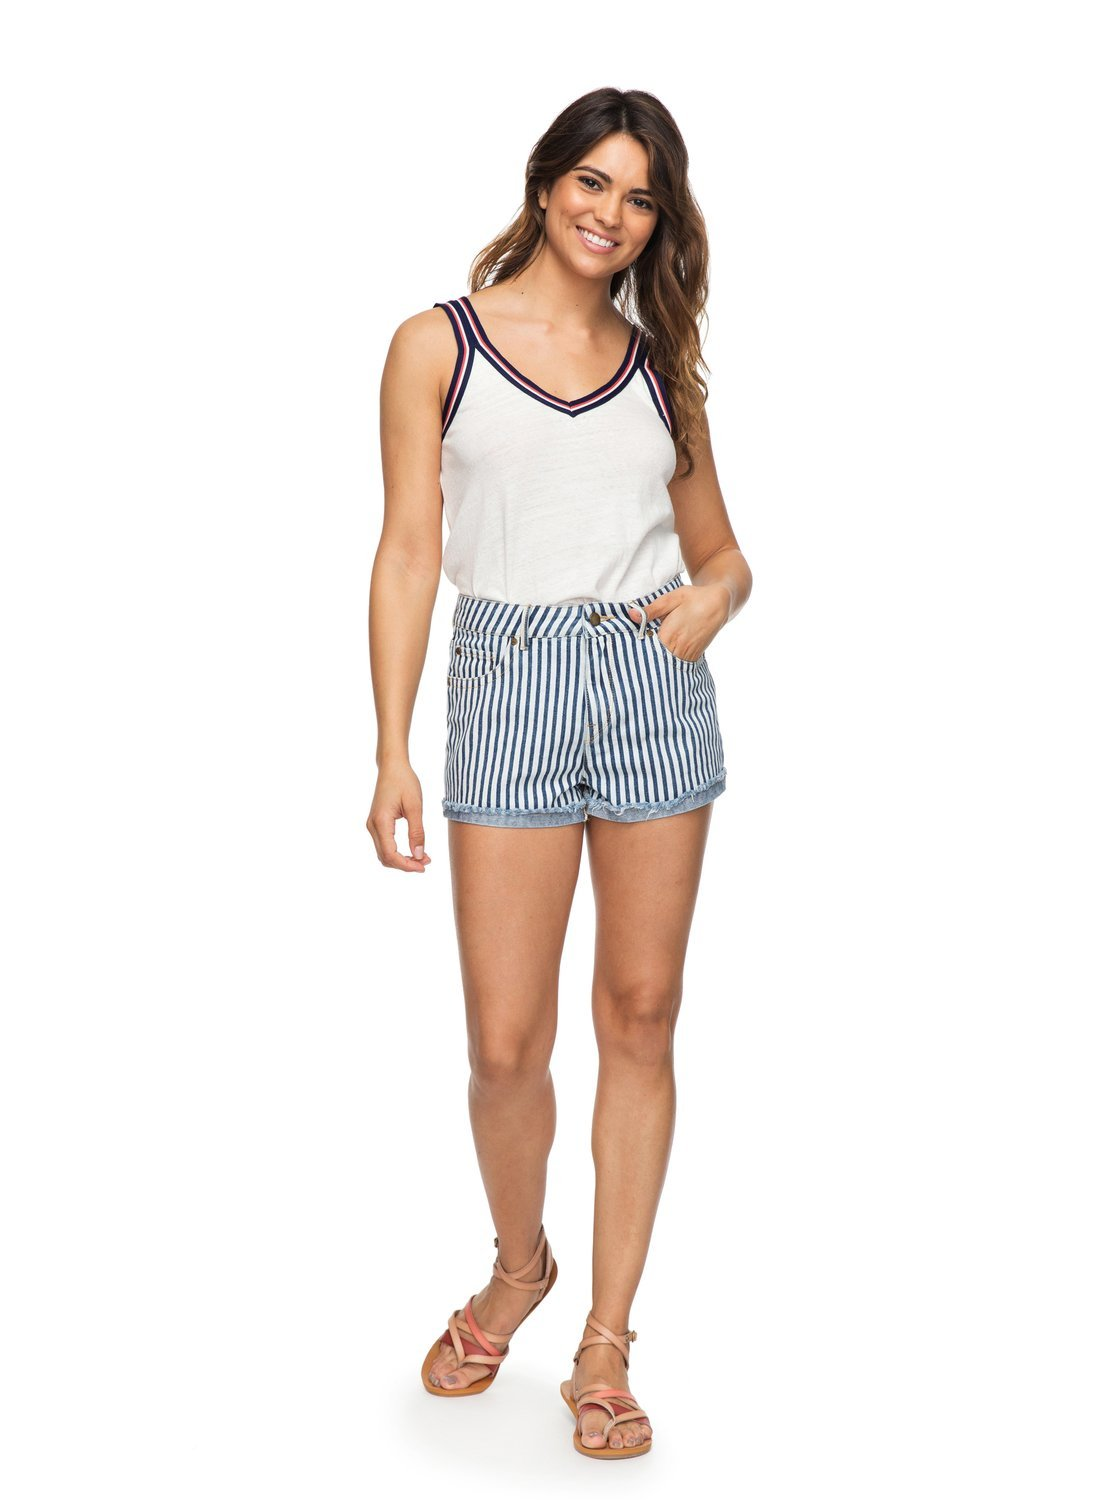 Roxy Womens Holbrook - Denim Shorts - Women - 29 - Blue Medium Blue La Vague Stripe 29